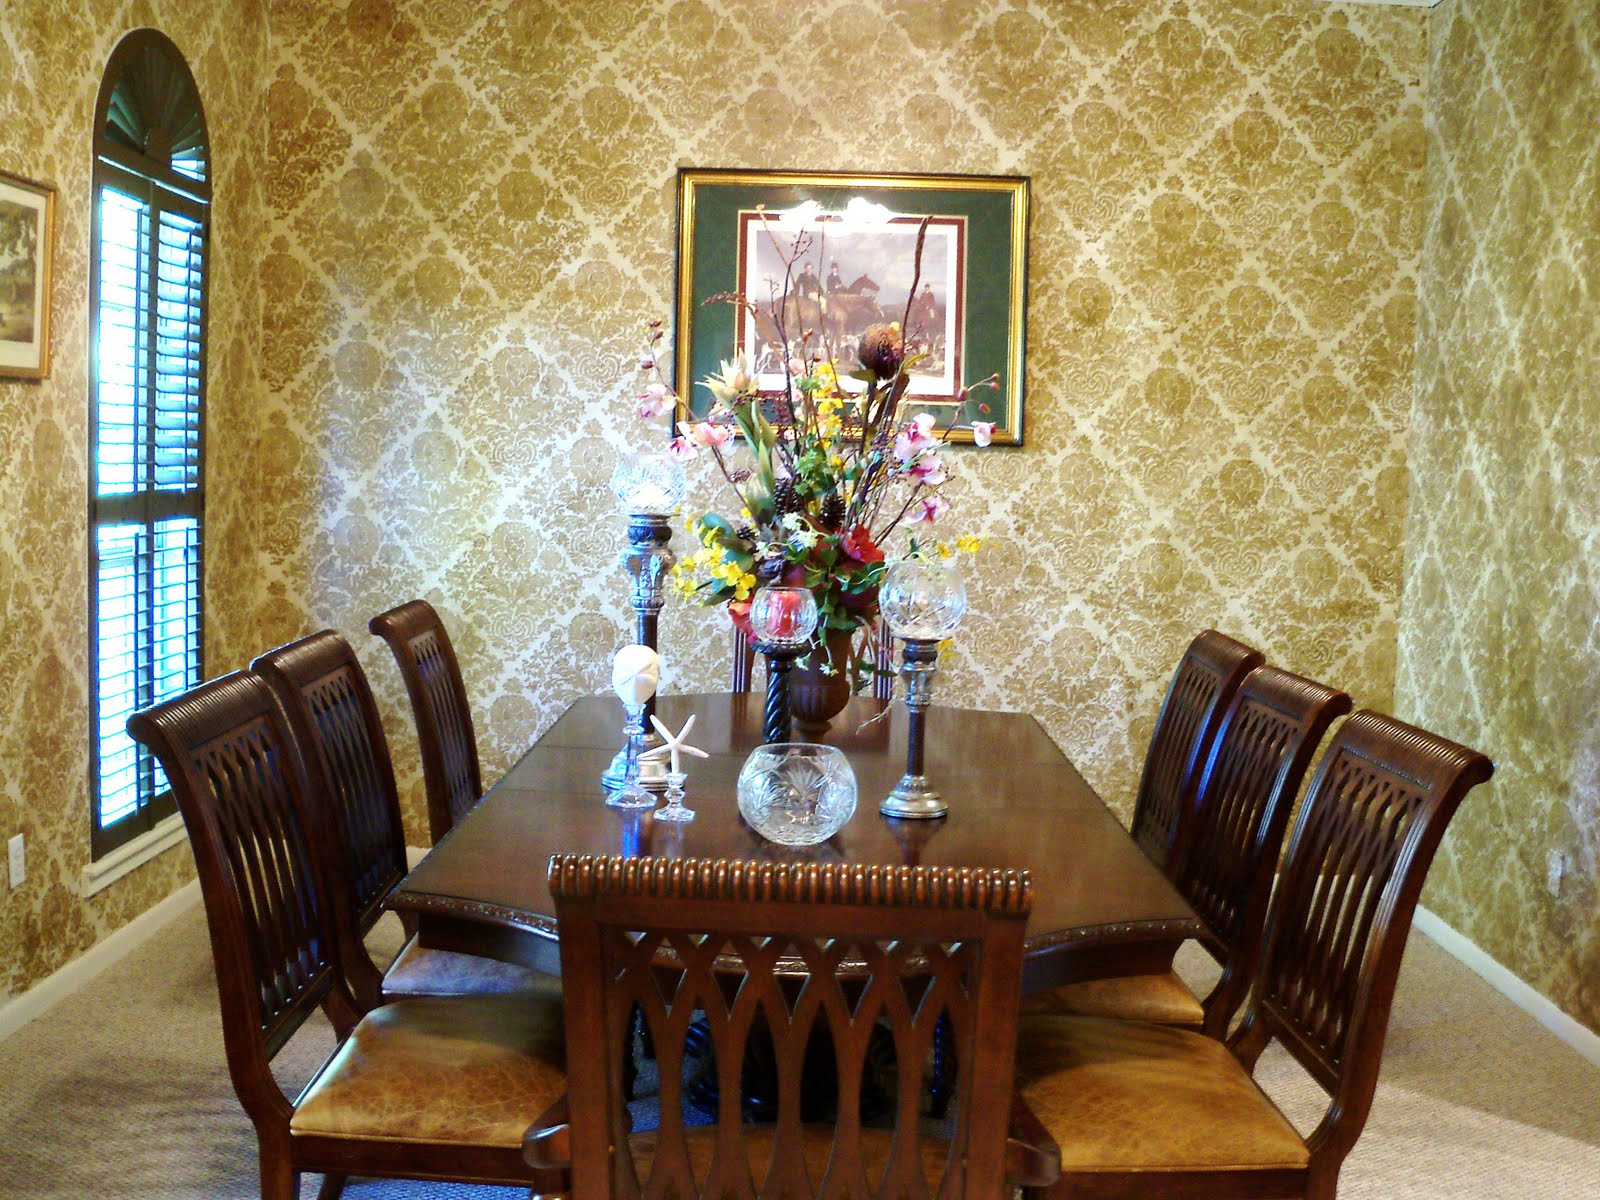 Wallpaper Ideas For Dining Room   Large And Beautiful Photos. Photo To  Select Wallpaper Ideas For Dining Room | Design Your Home